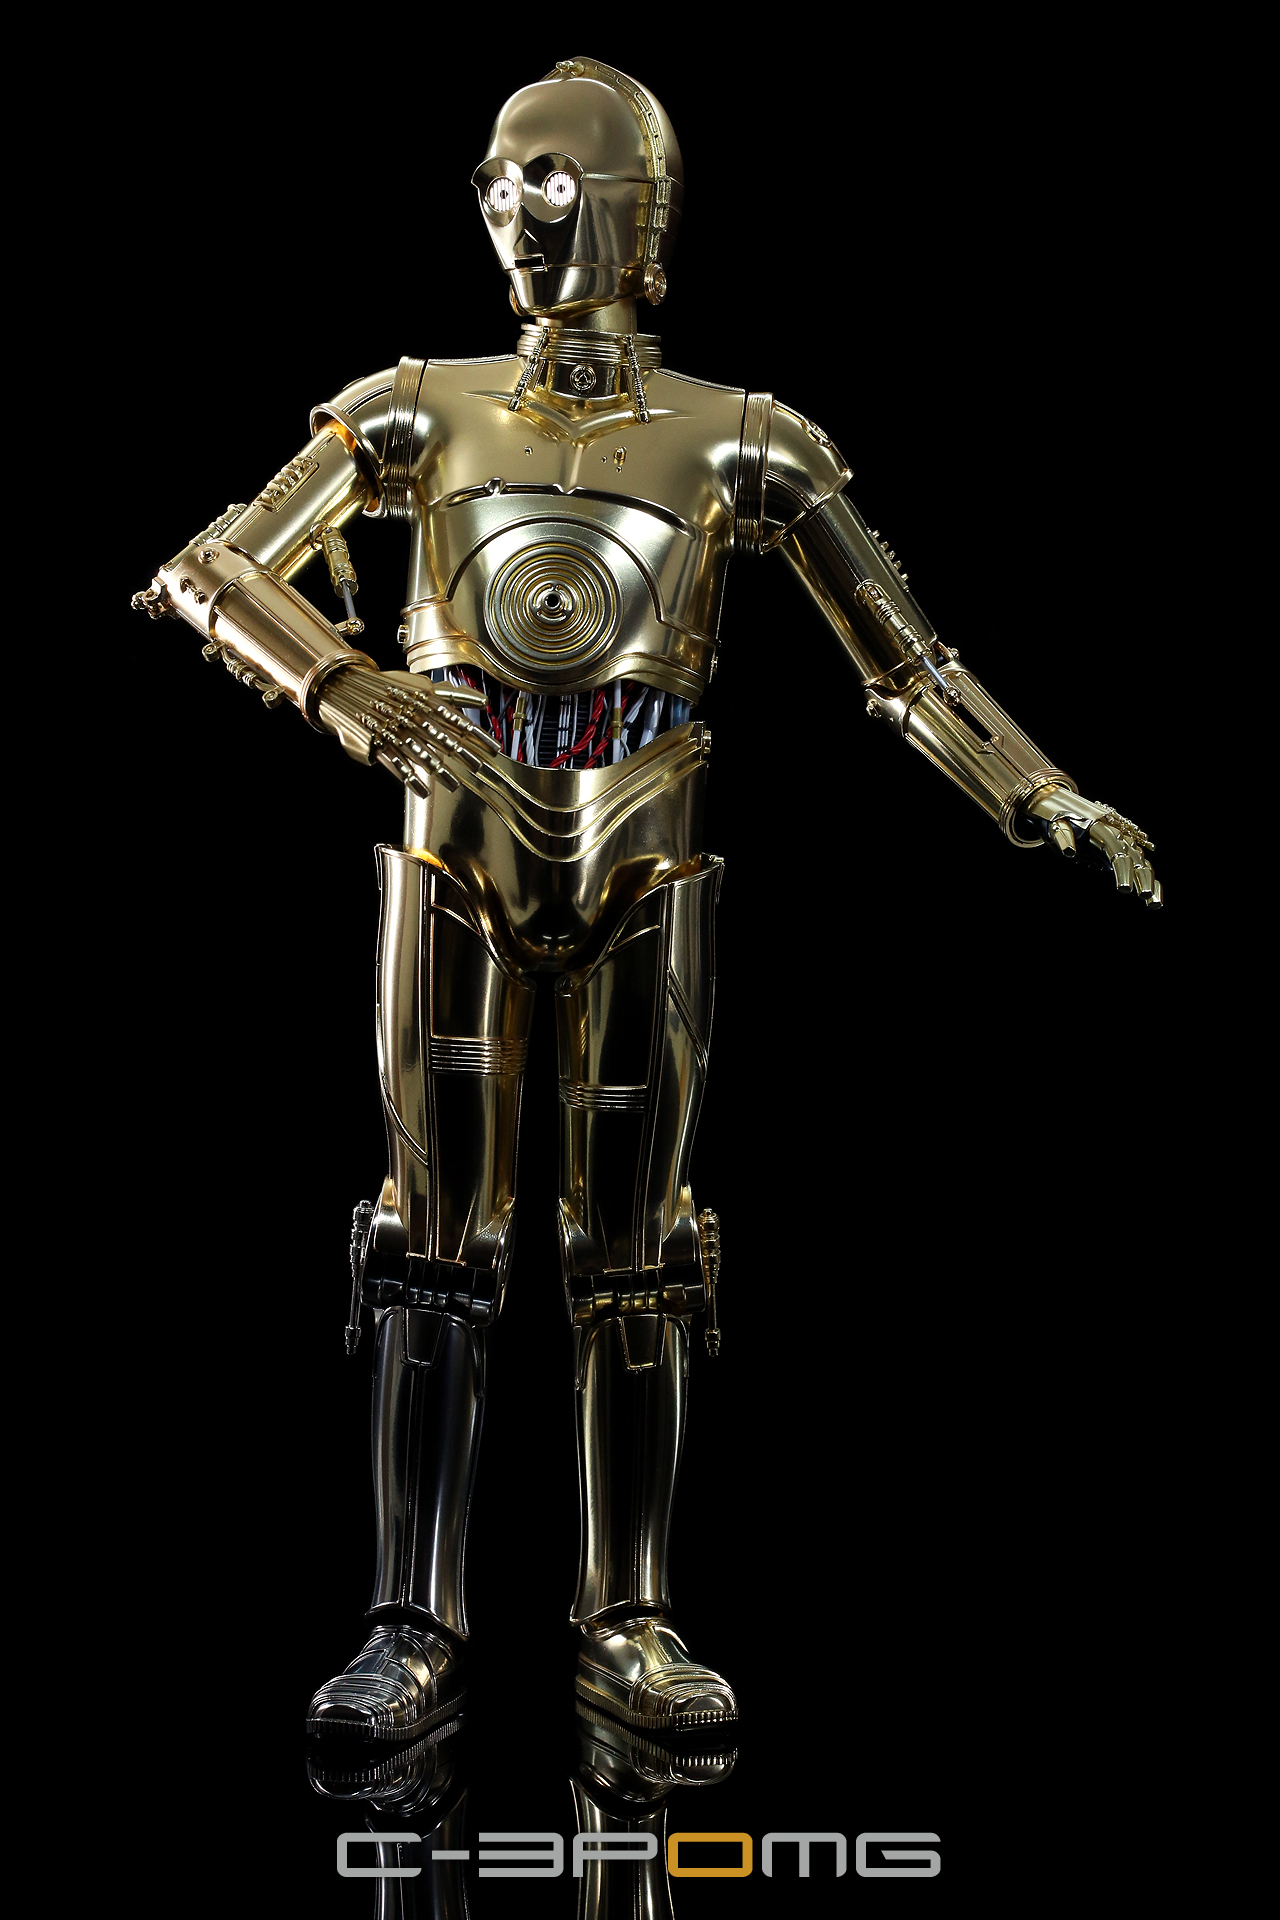 [Bandai] Star Wars: C-3PO - Perfect Model 1/6 scale - LANÇADO!!! - Página 2 C-3PO1025_zpsd167f75e